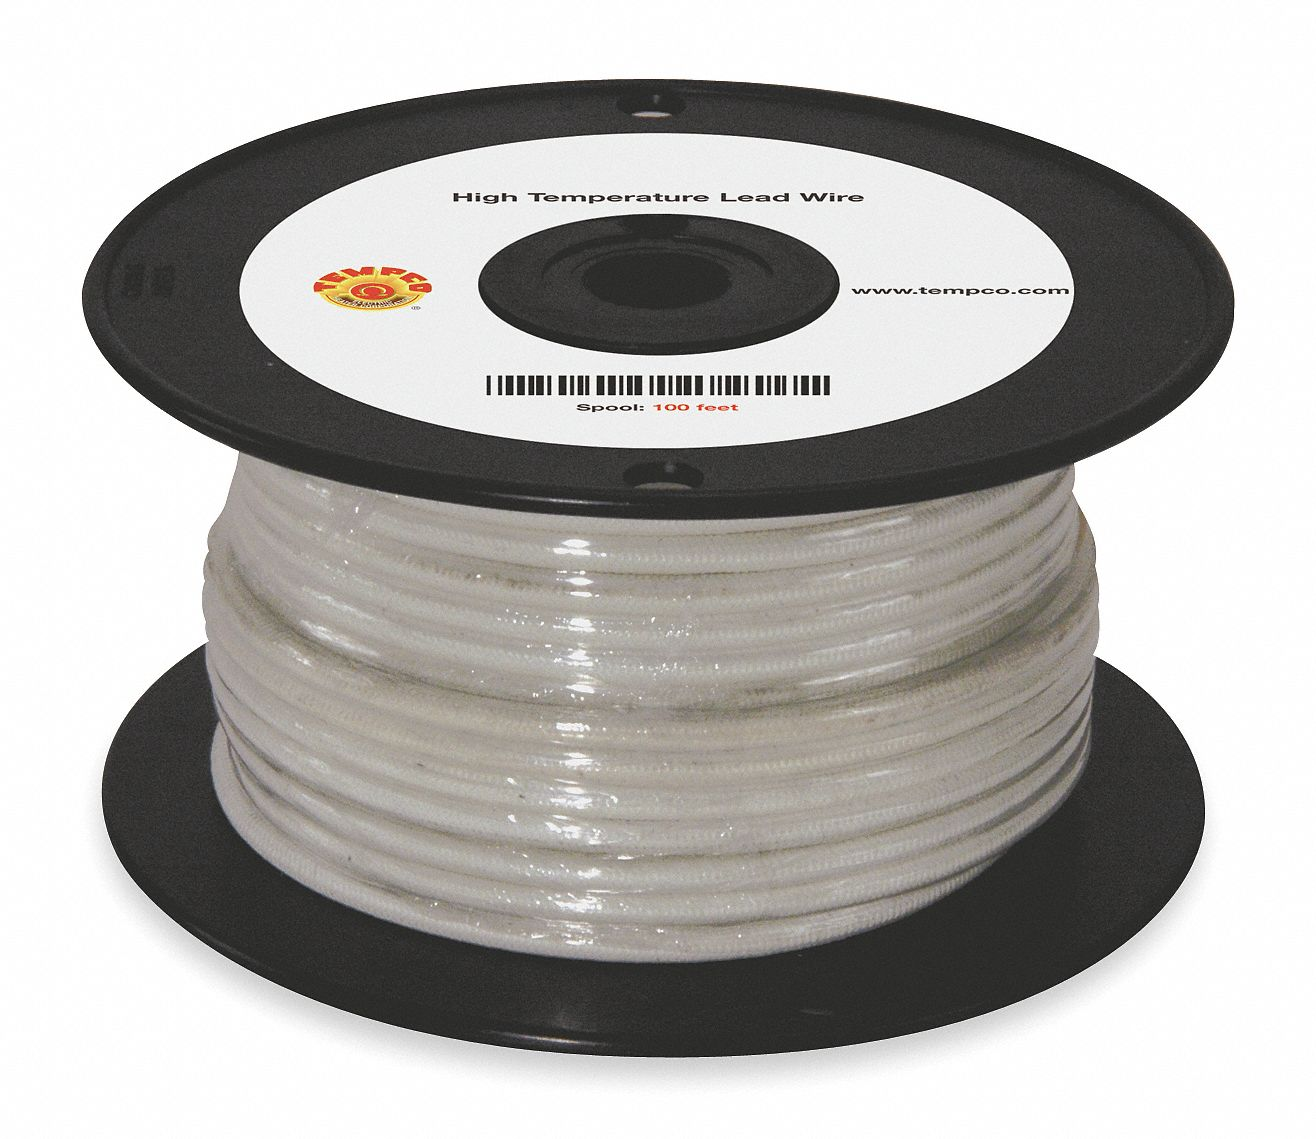 TEMPCO 250 ft., 600VAC High Temperature Lead Wire with MG Cable Type ...